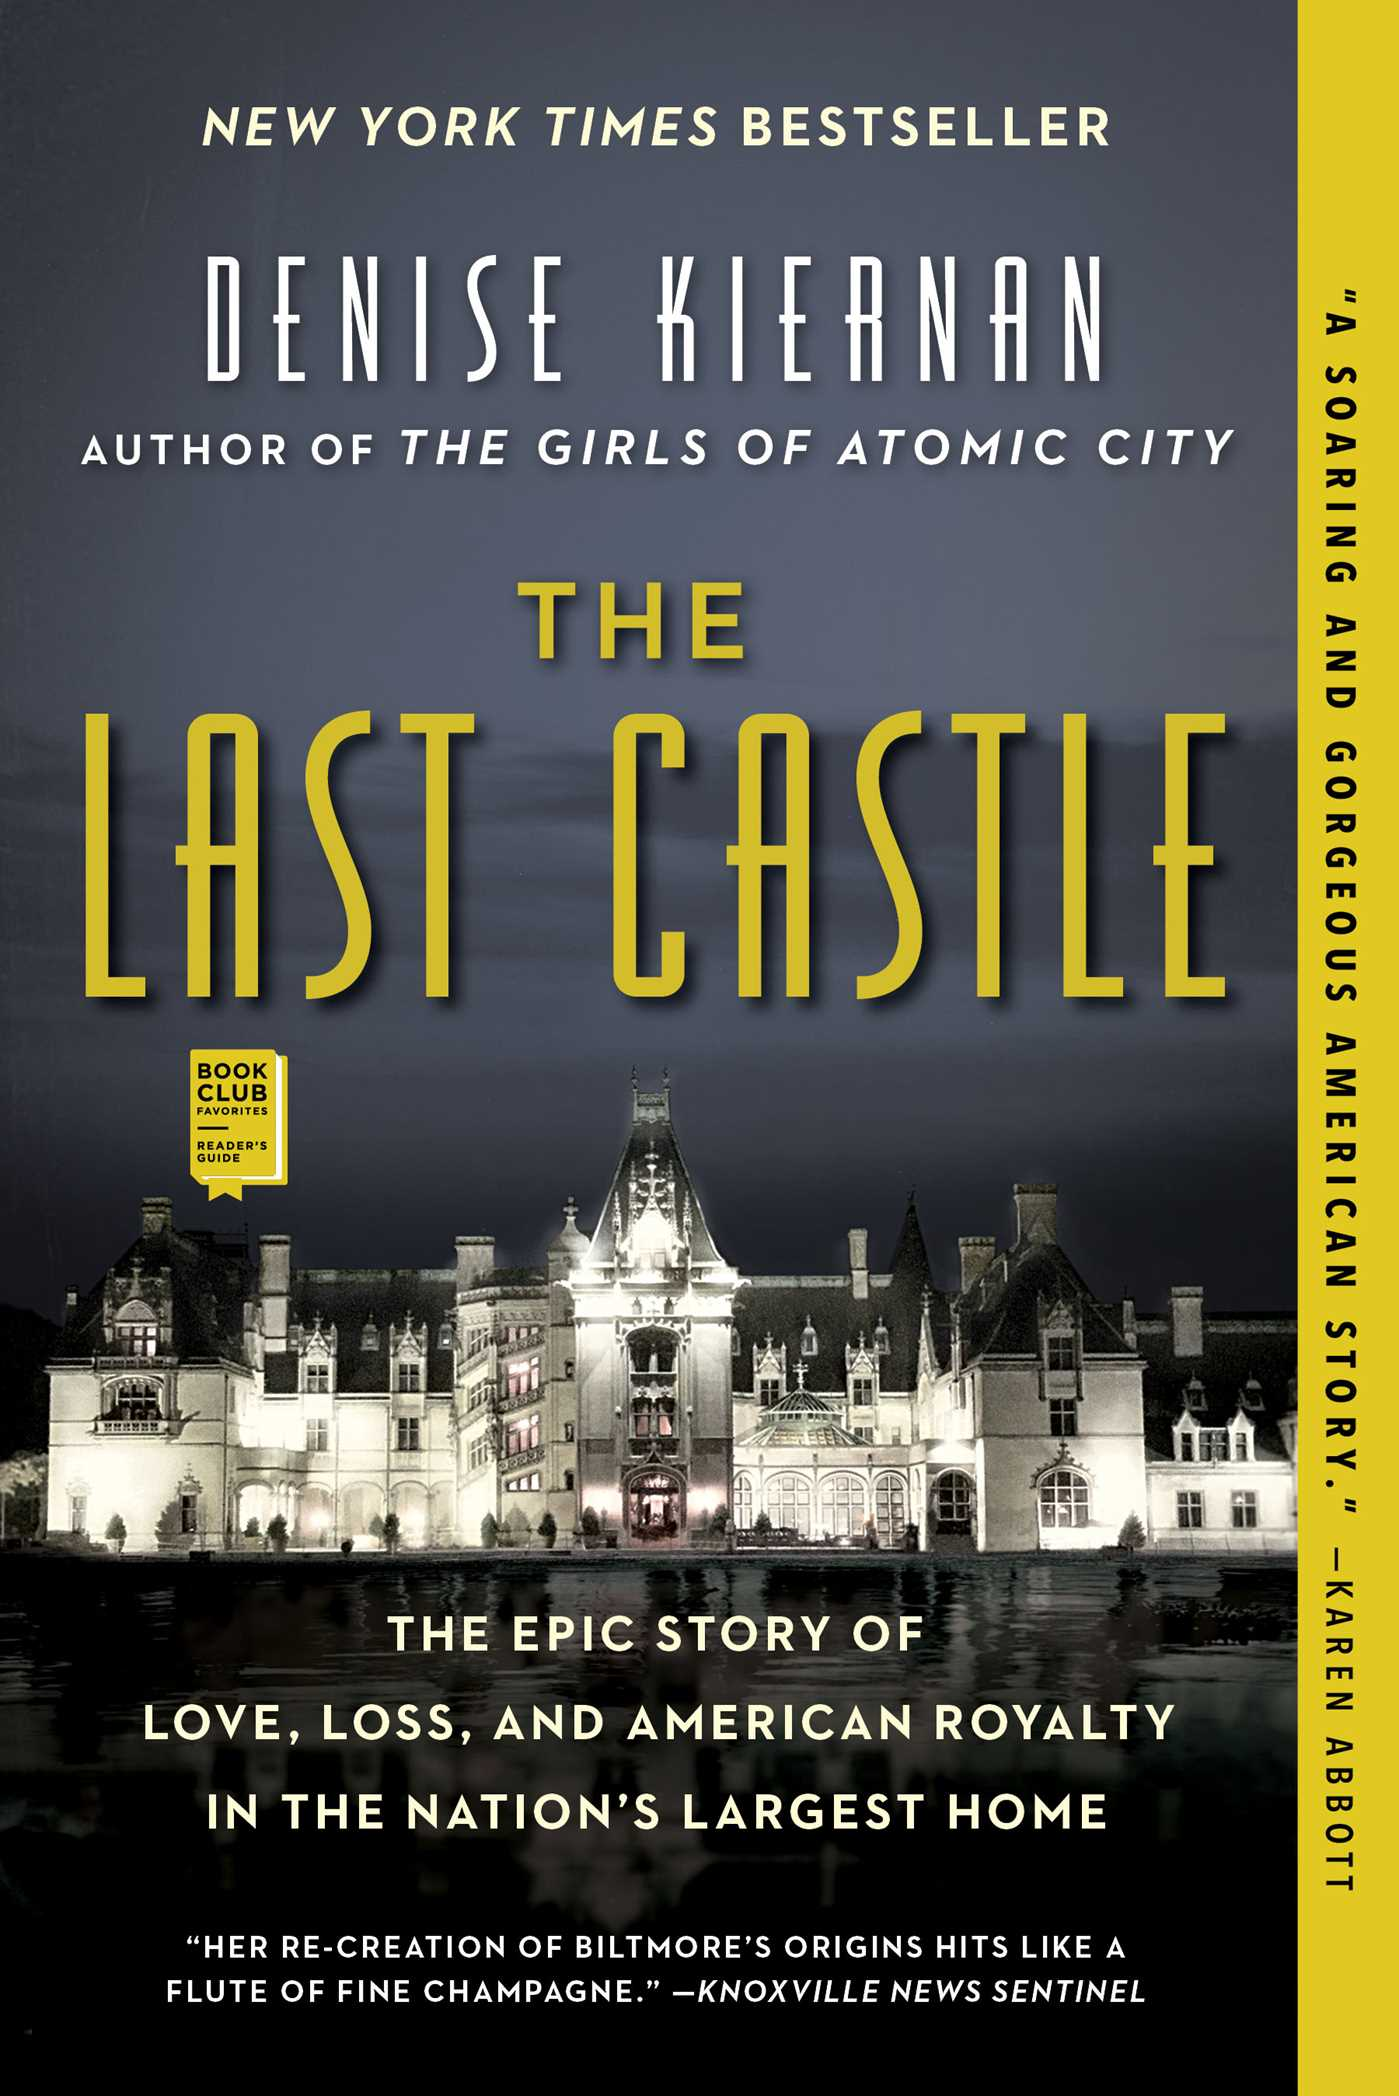 The last castle 9781476794068 hr